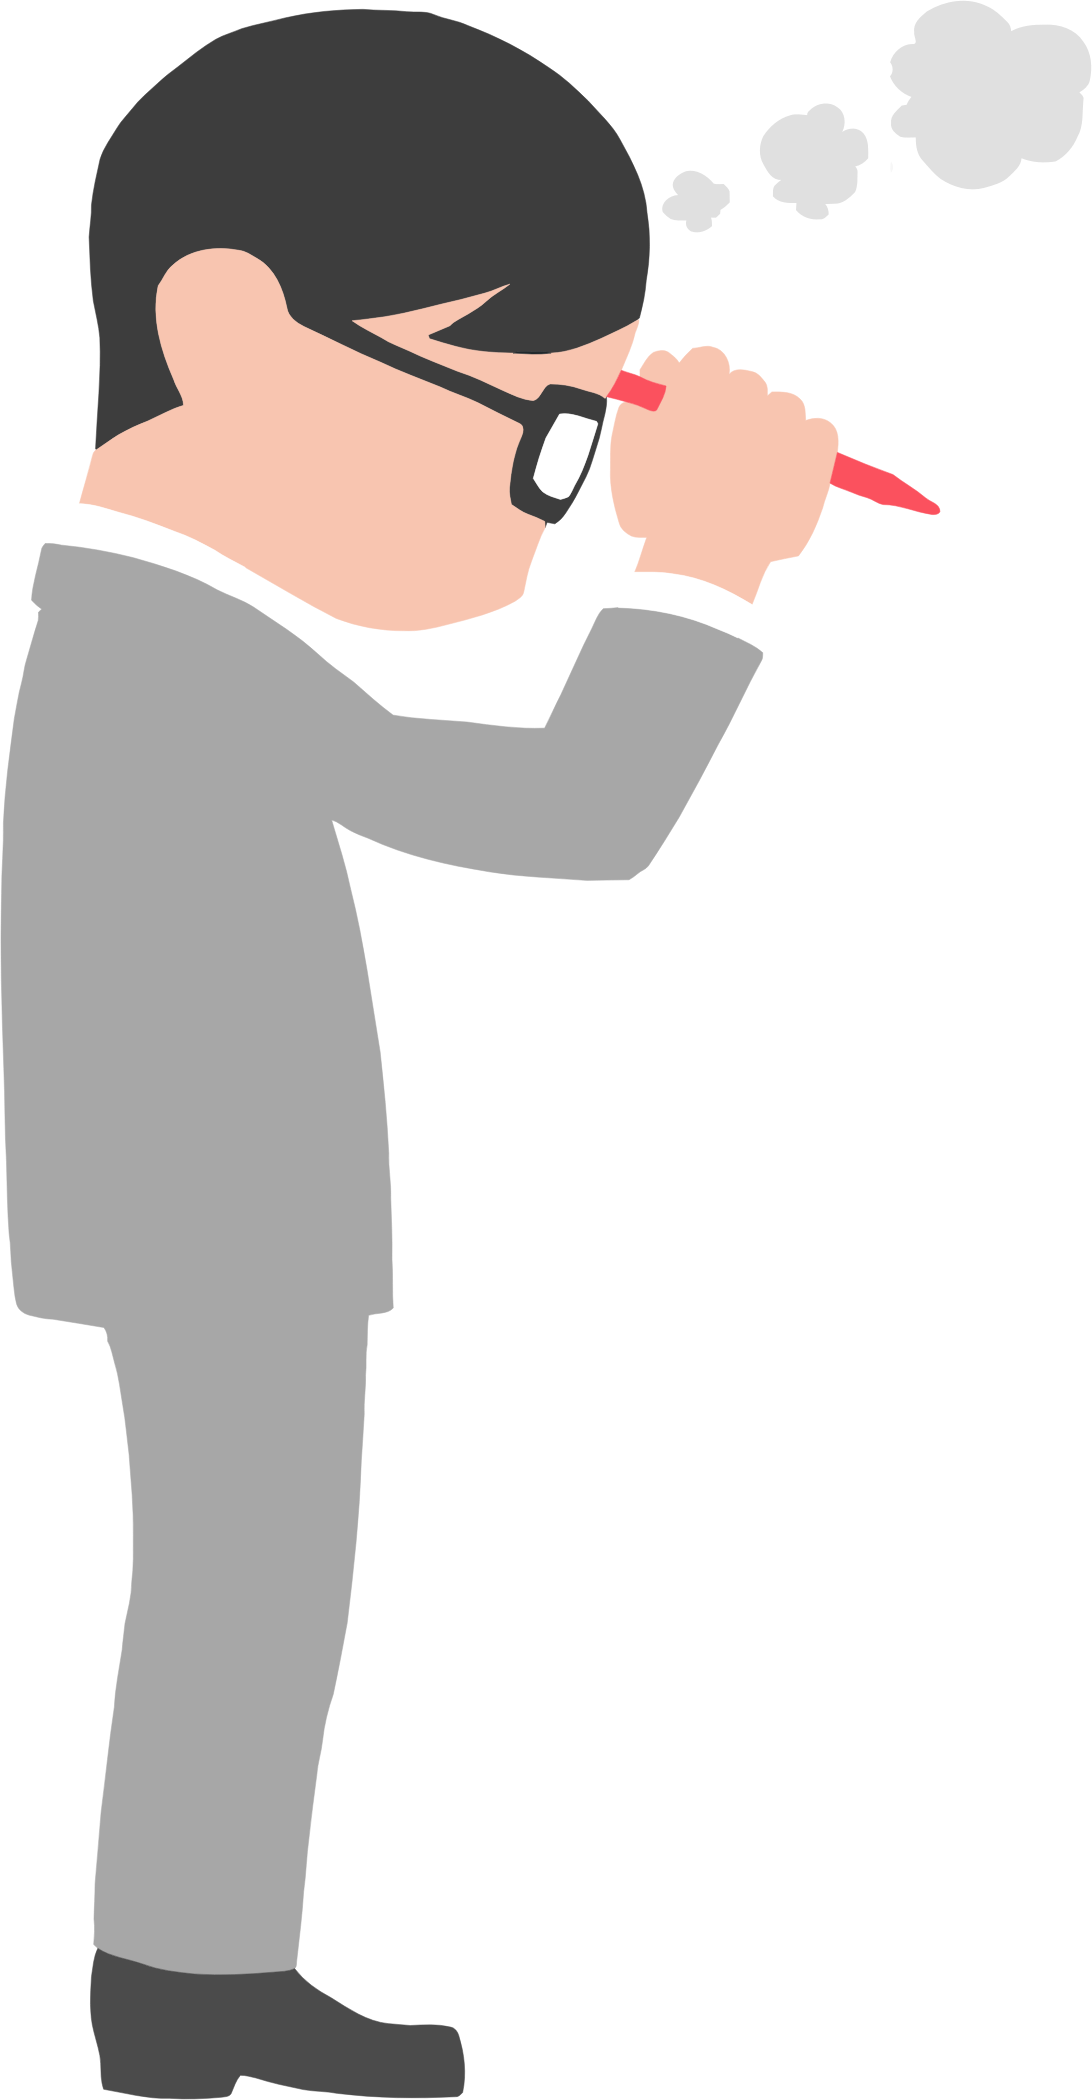 Clipart man thinking. In suit big image